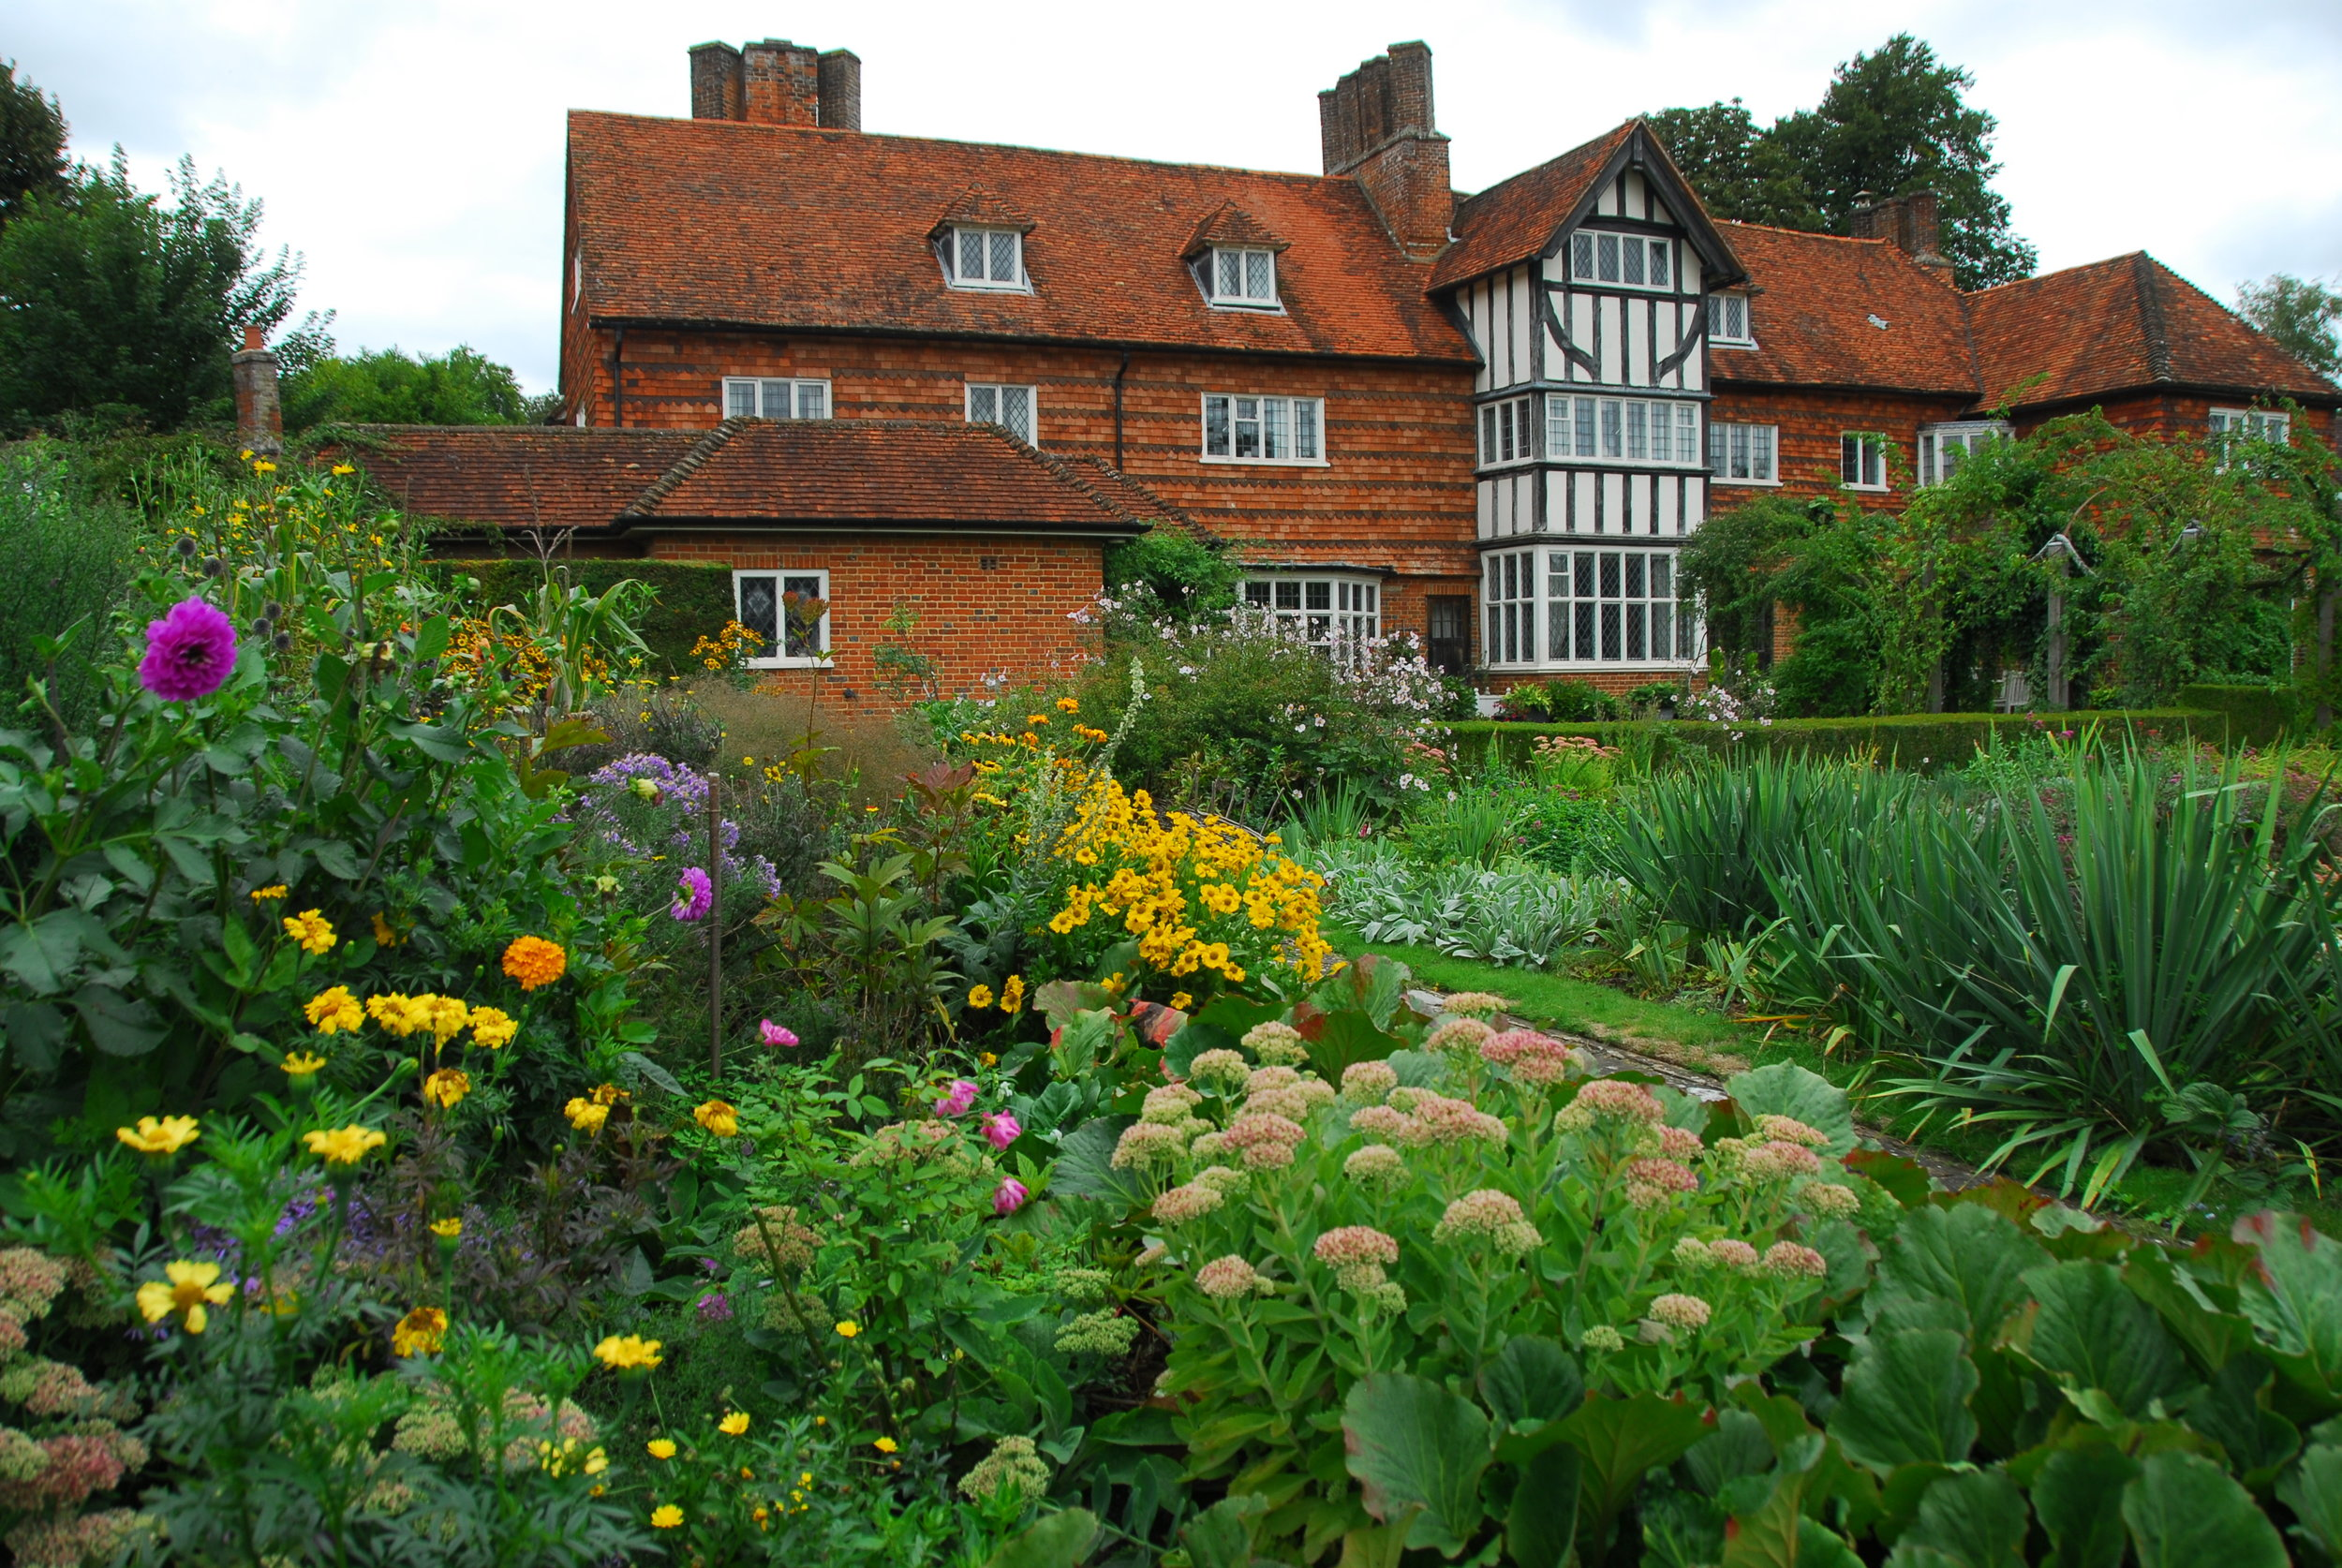 """THE MANOR HOUSE, UPTON GREY   """"This is the only pure restoration of the work of the ground-breaking designer Gertrude Jekyll, by the indefatigable Rosamund Wallinger. It's a window back into our perennial-past, and a perfect location to consider how far (or not) we've come."""""""